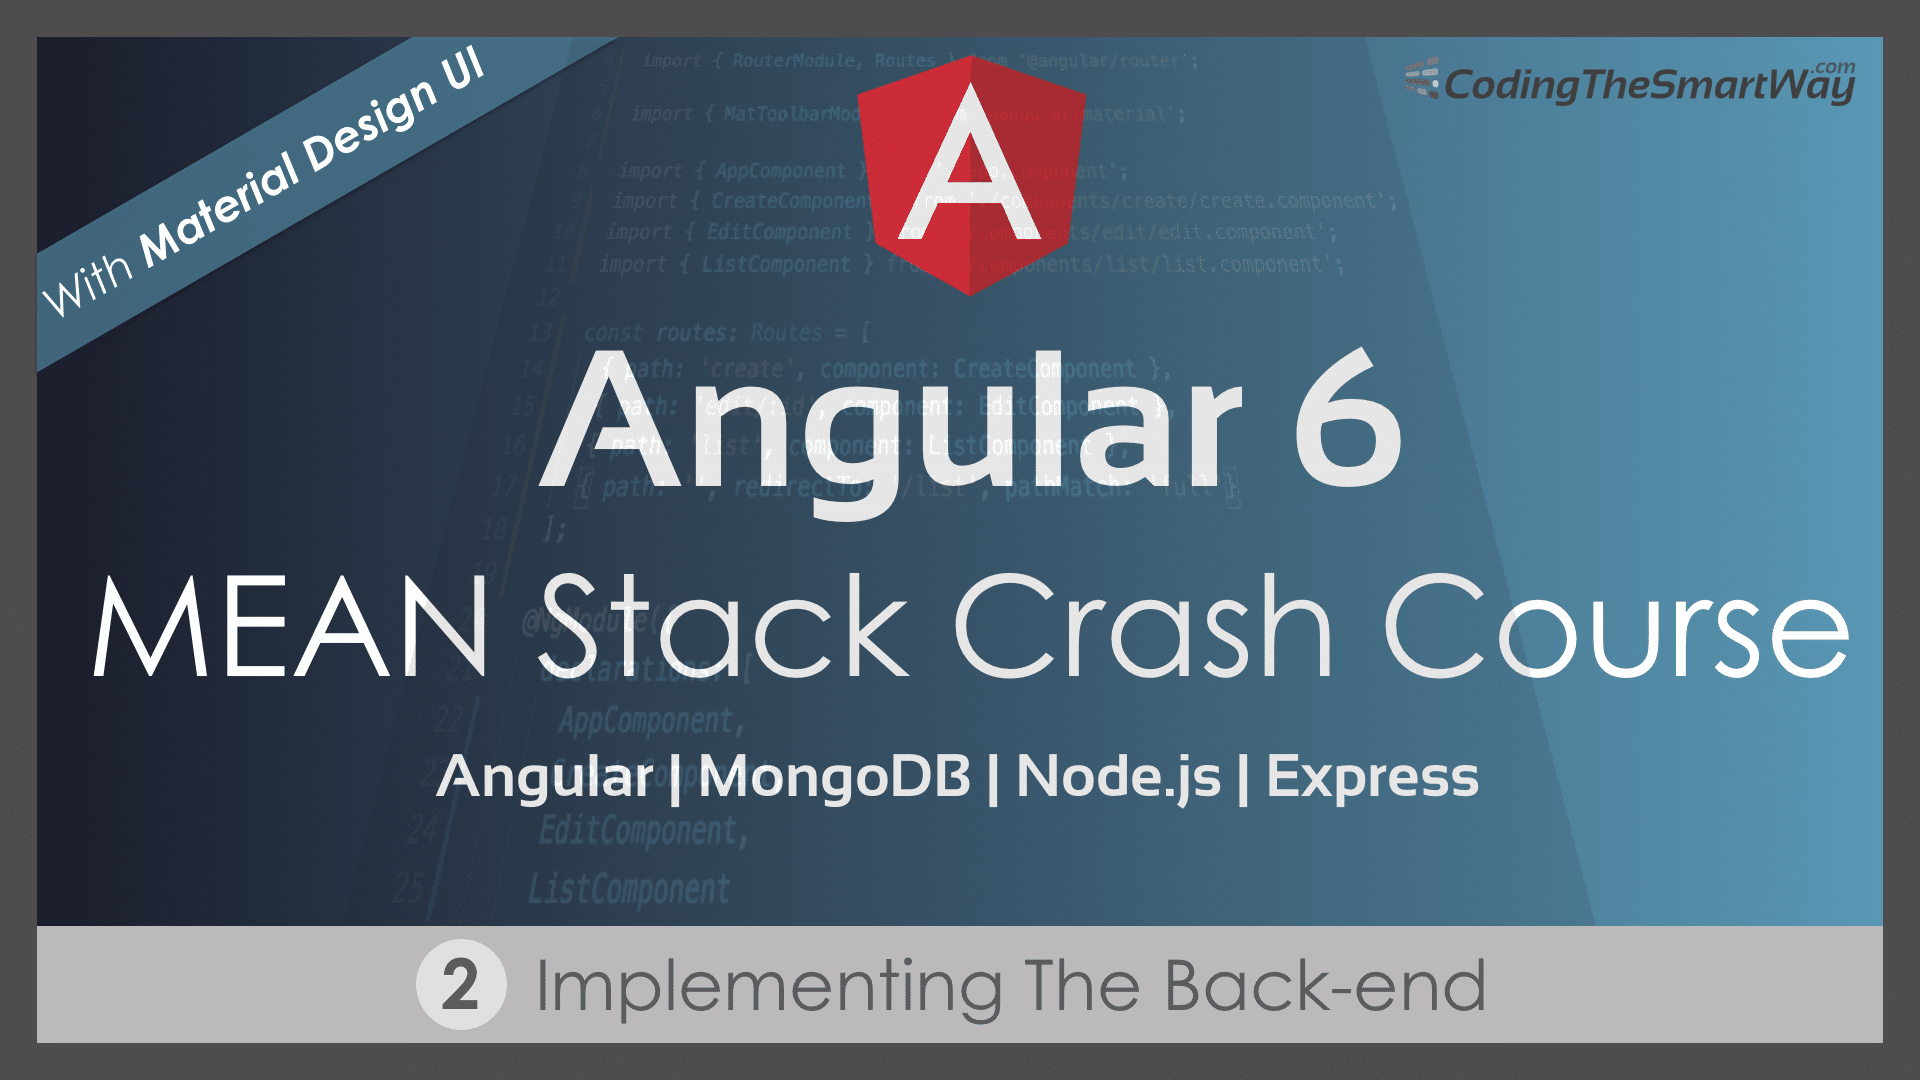 Angular 6 - MEAN Stack Crash Course - Part 2: Implementing The Back